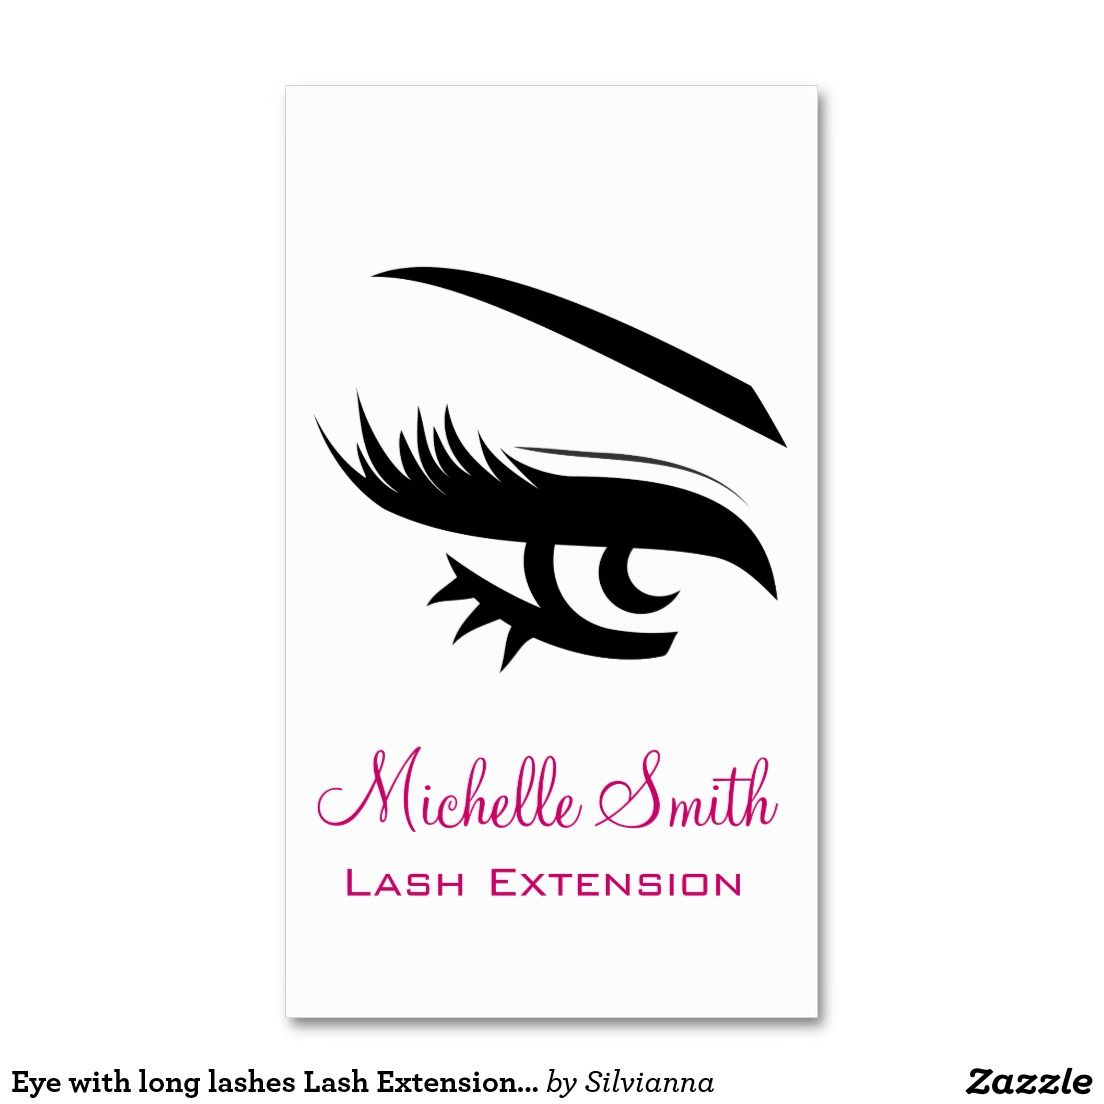 Eye with long lashes lash extension business card business cards eye with long lashes lash extension business card business cards magicingreecefo Image collections